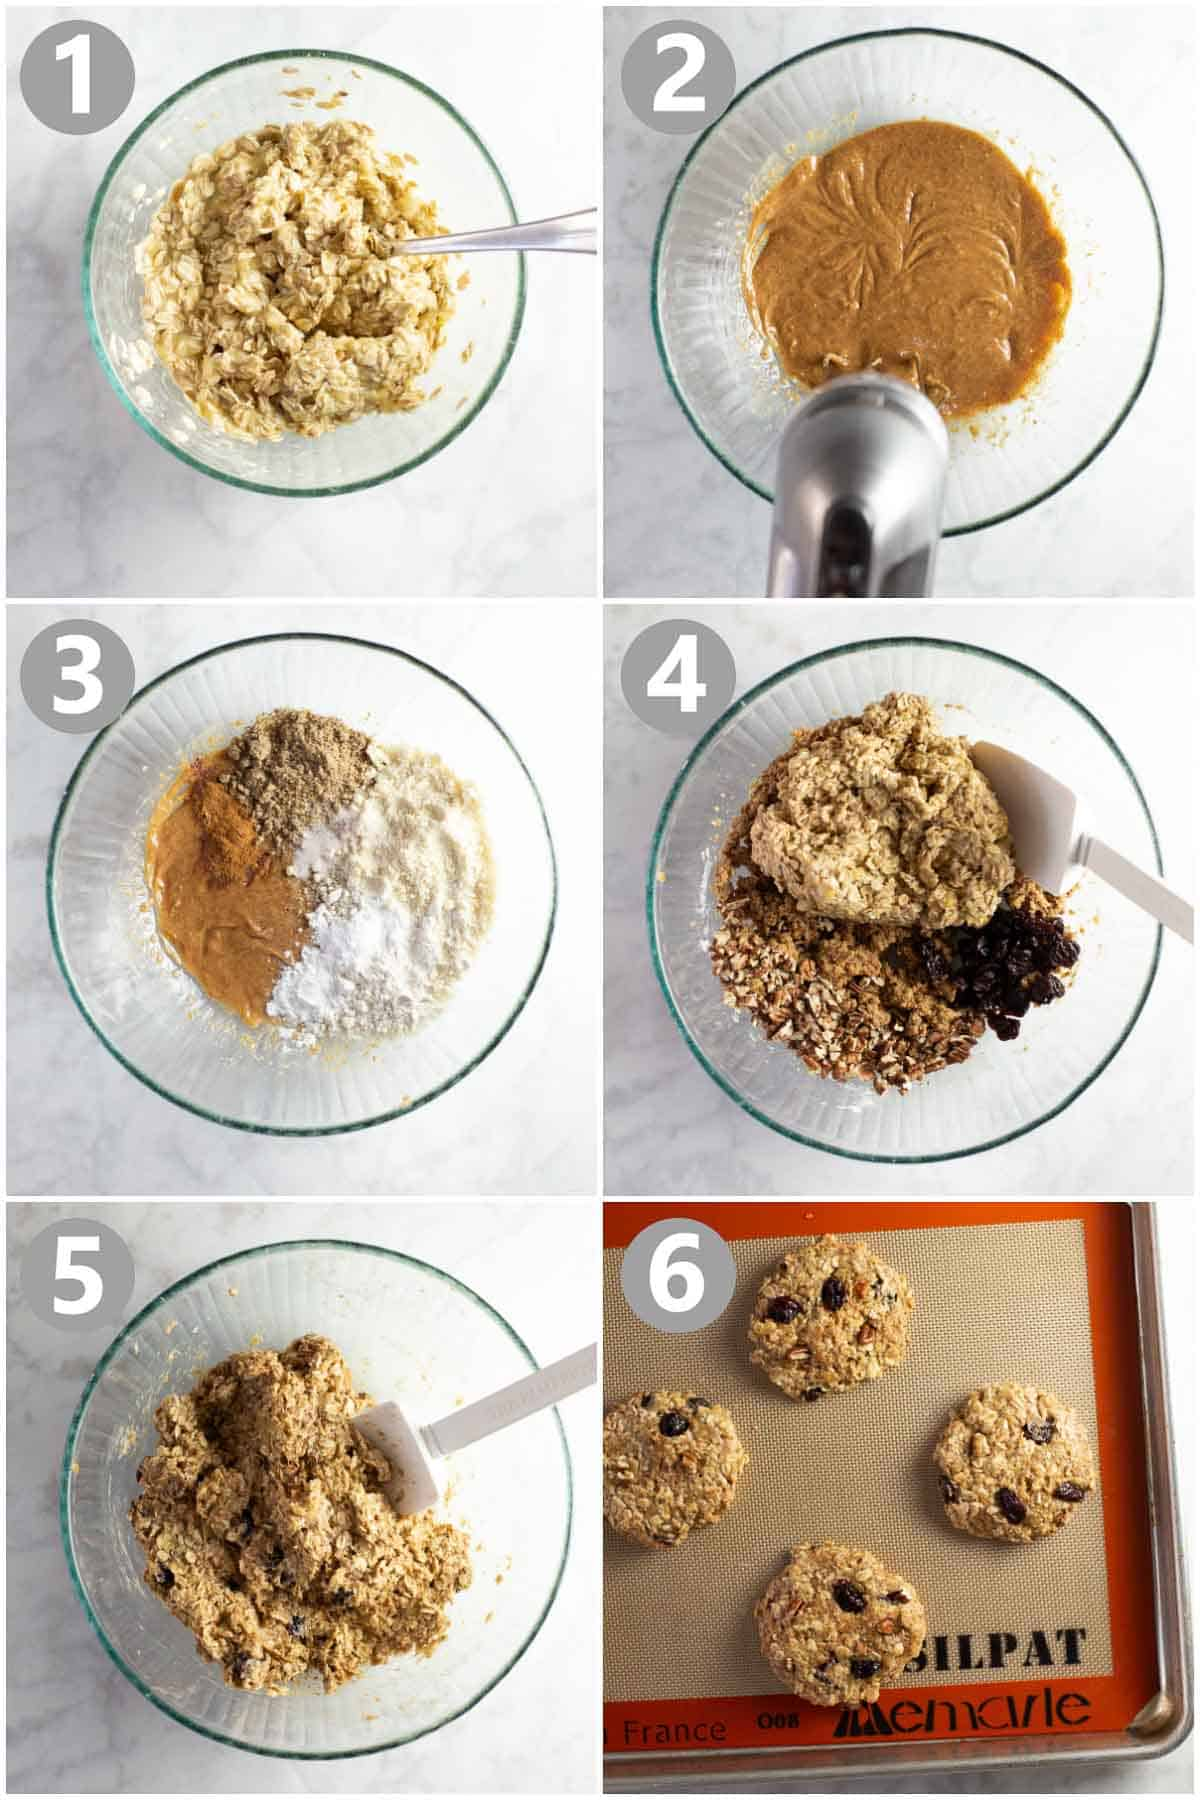 photo collage shows steps in making a banana cookie recipe